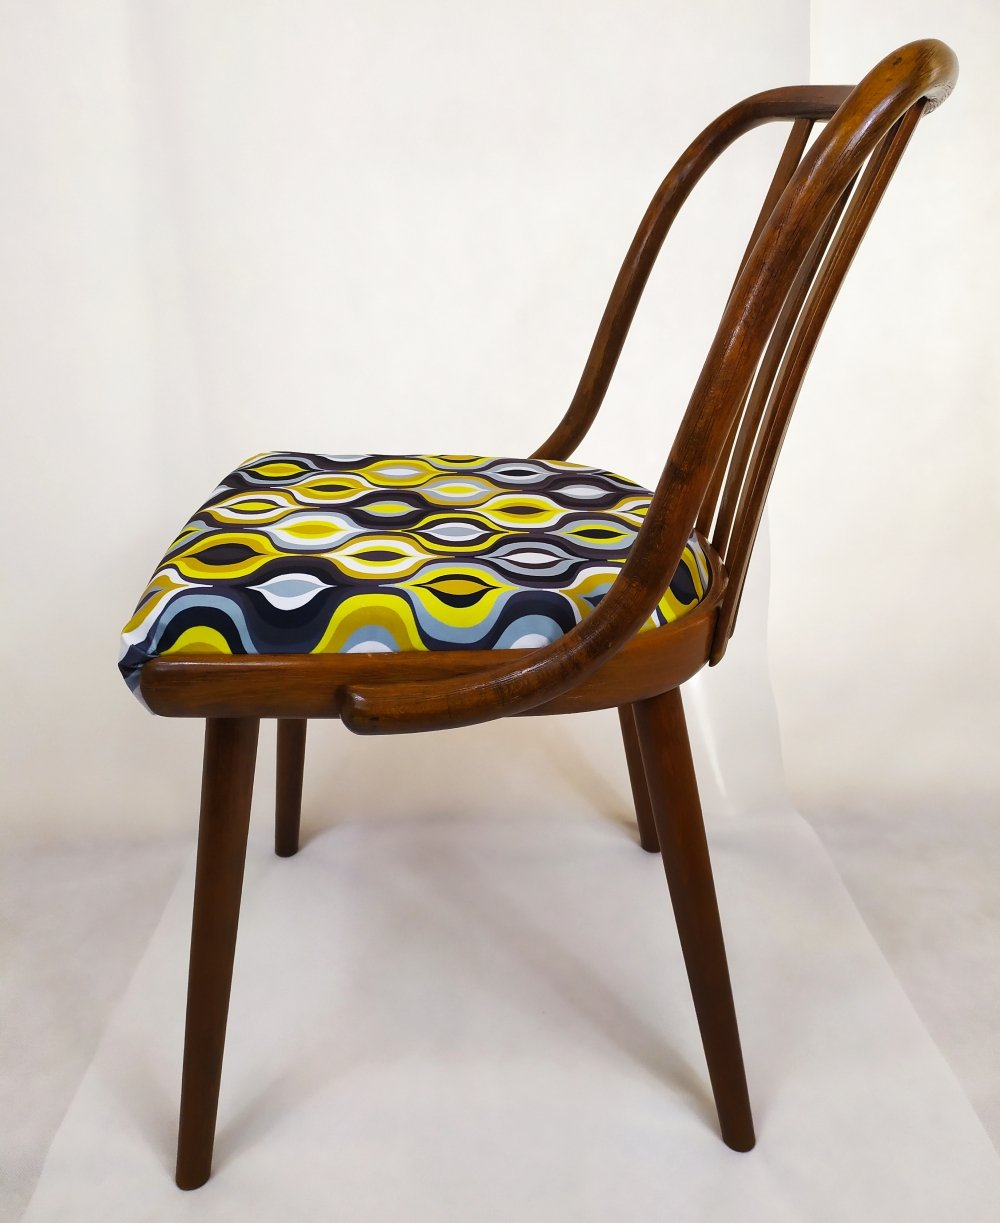 Set of 4 Dining chairs by Antonin Suman for TON